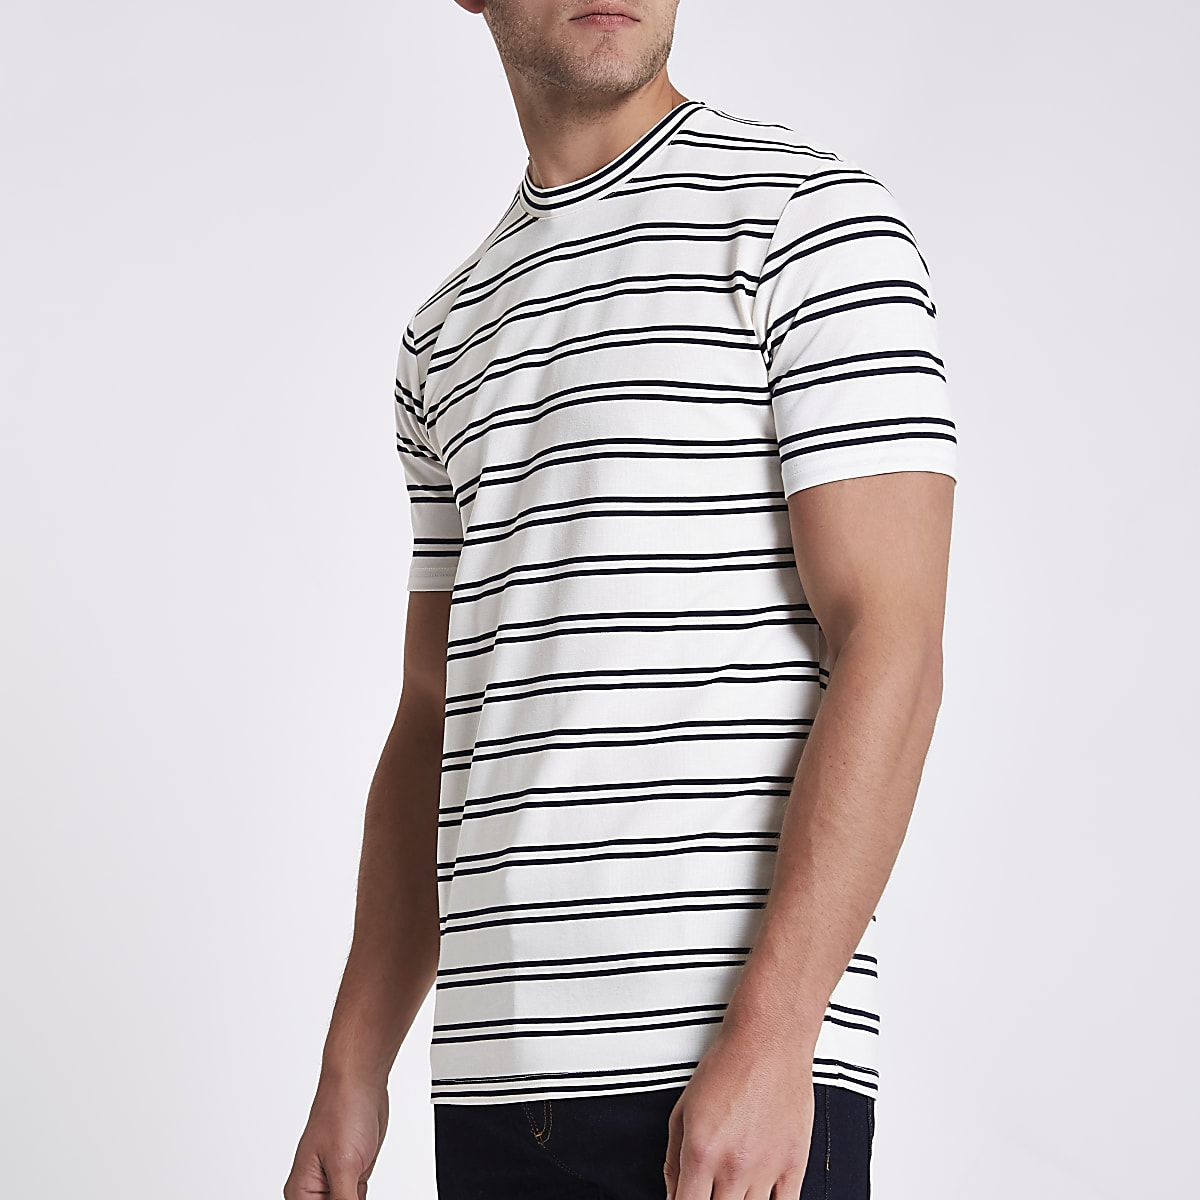 Minimum white stripe T-shirt